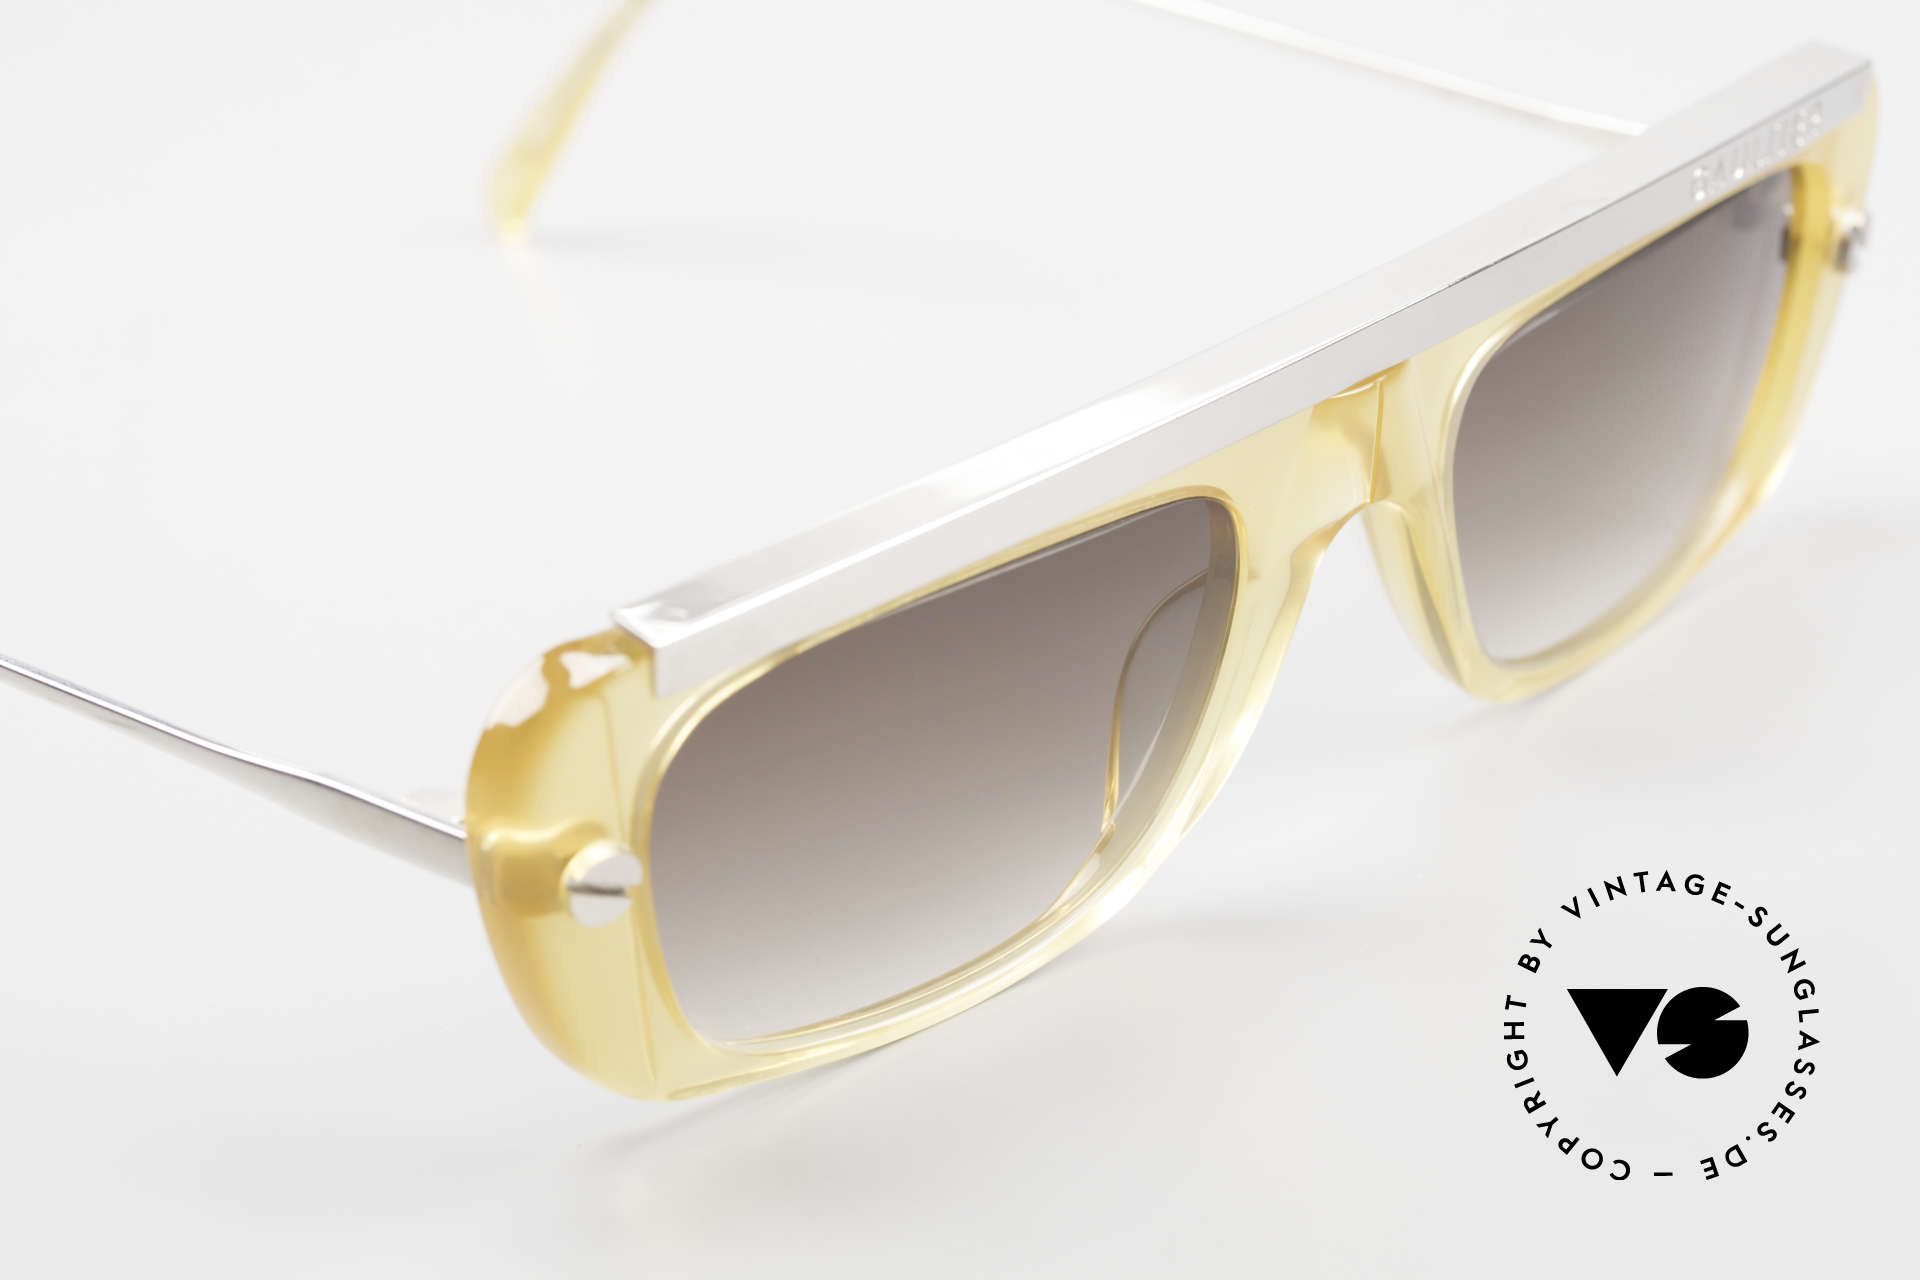 Jean Paul Gaultier 55-0771 Striking Vintage JPG Shades, NO RETRO shades, but a rare VINTAGE ORIGINAL, Made for Men and Women